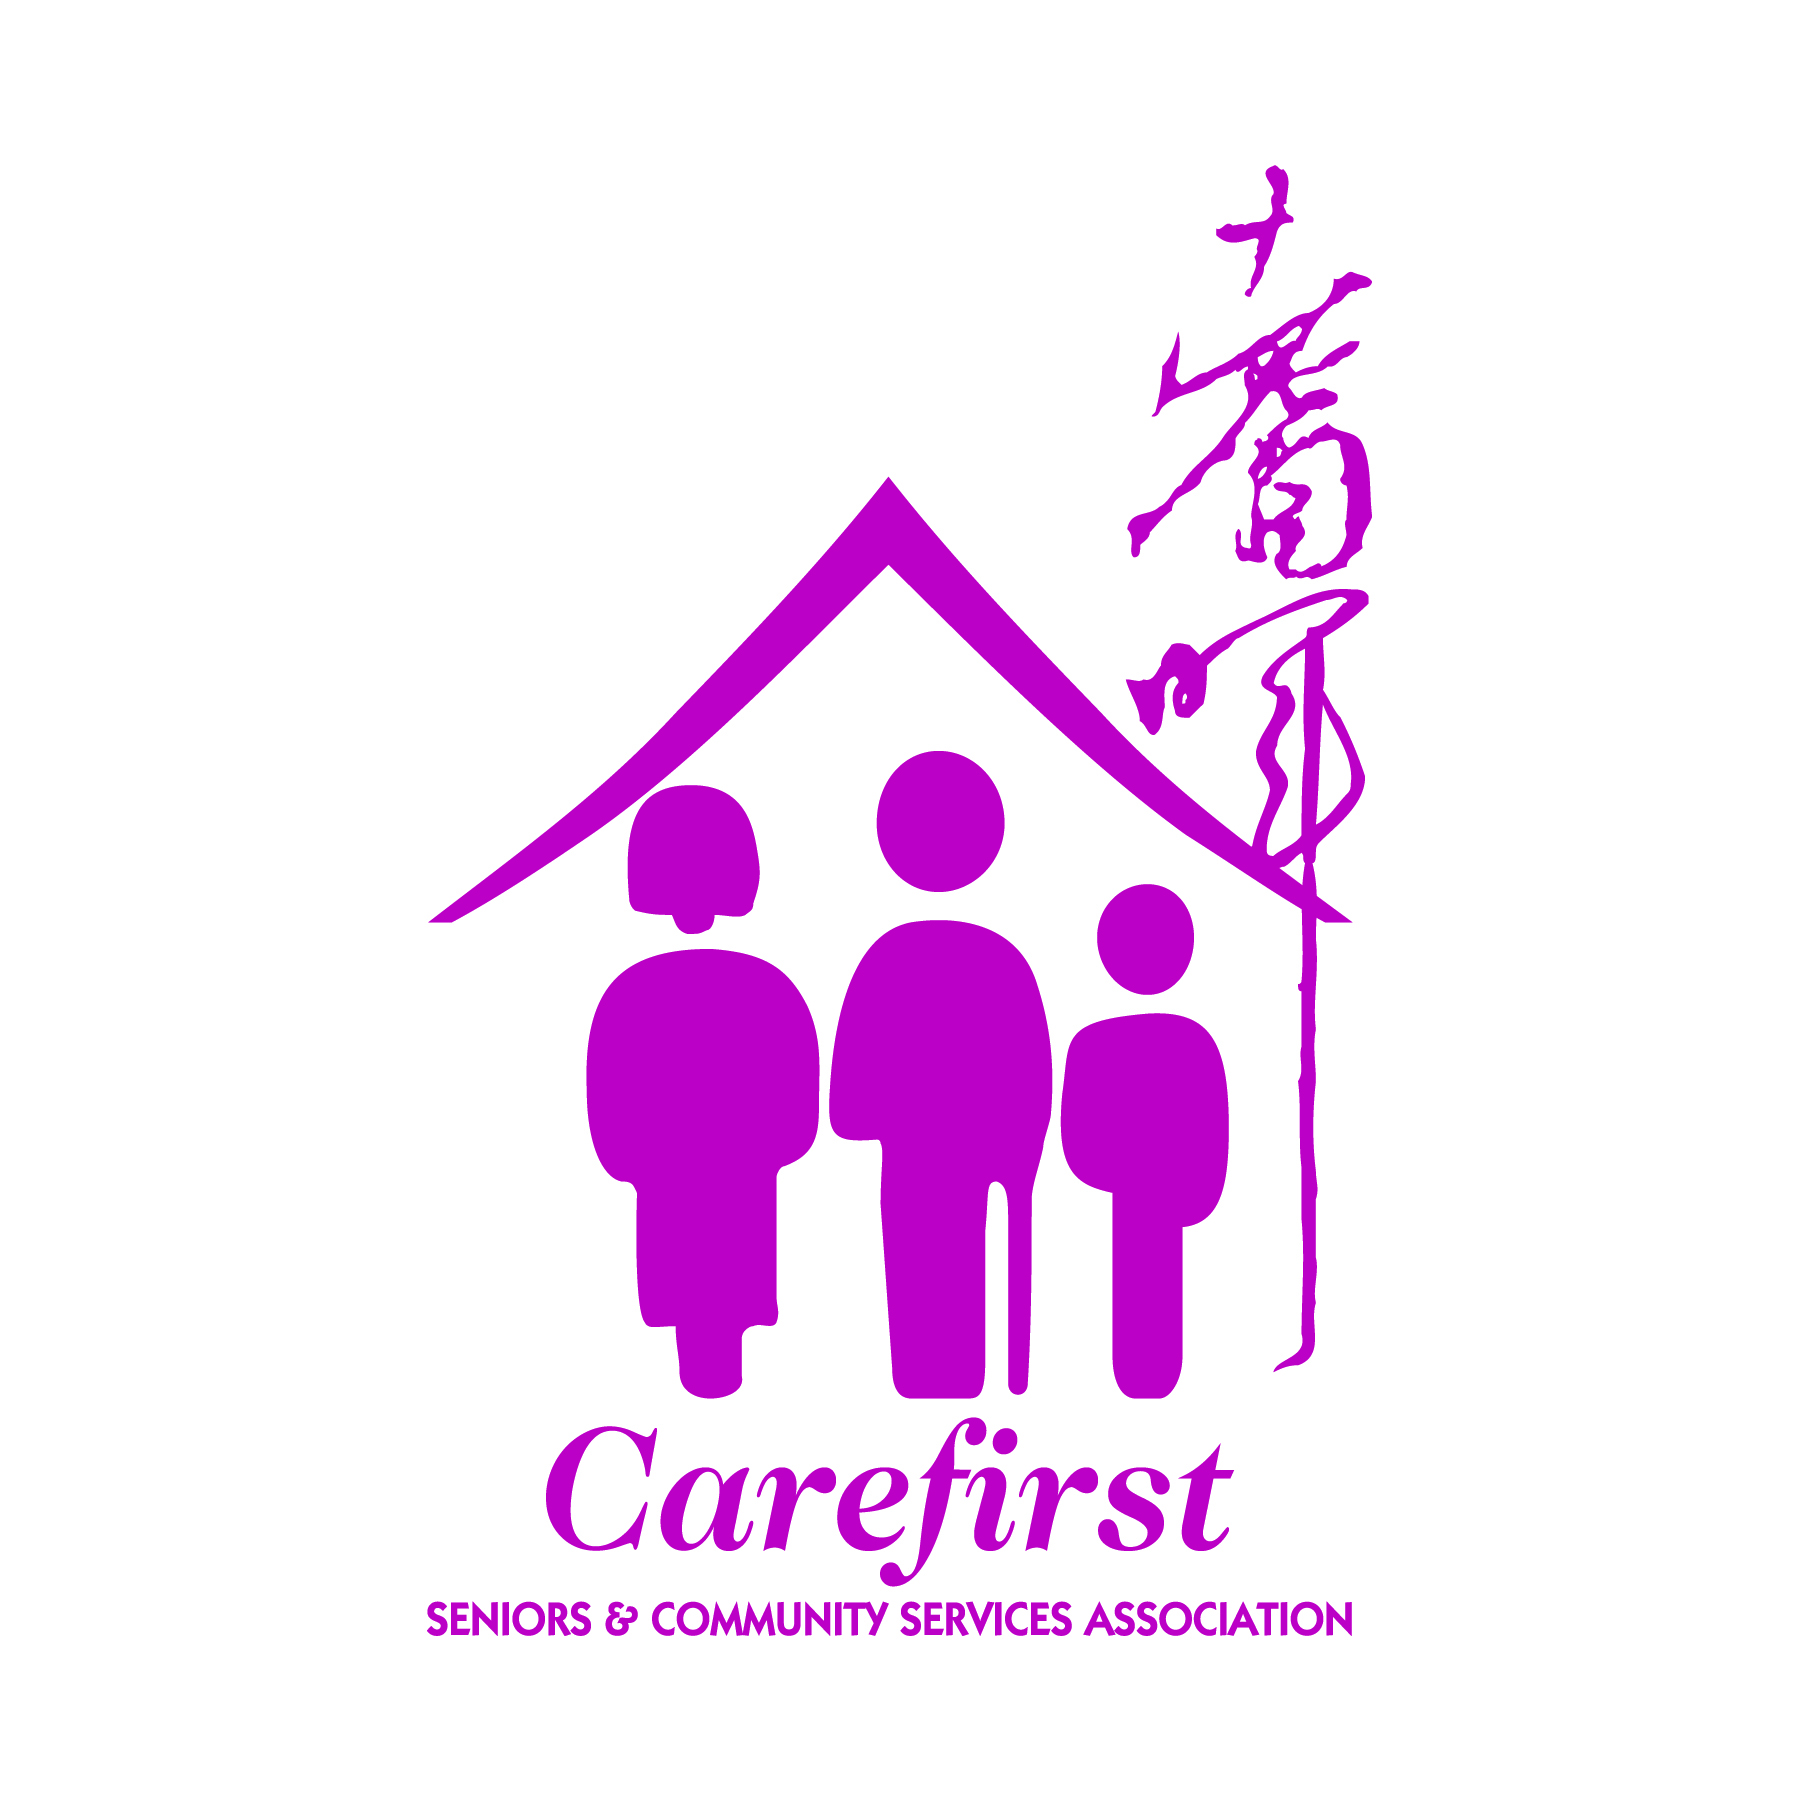 CarefirstSeniors